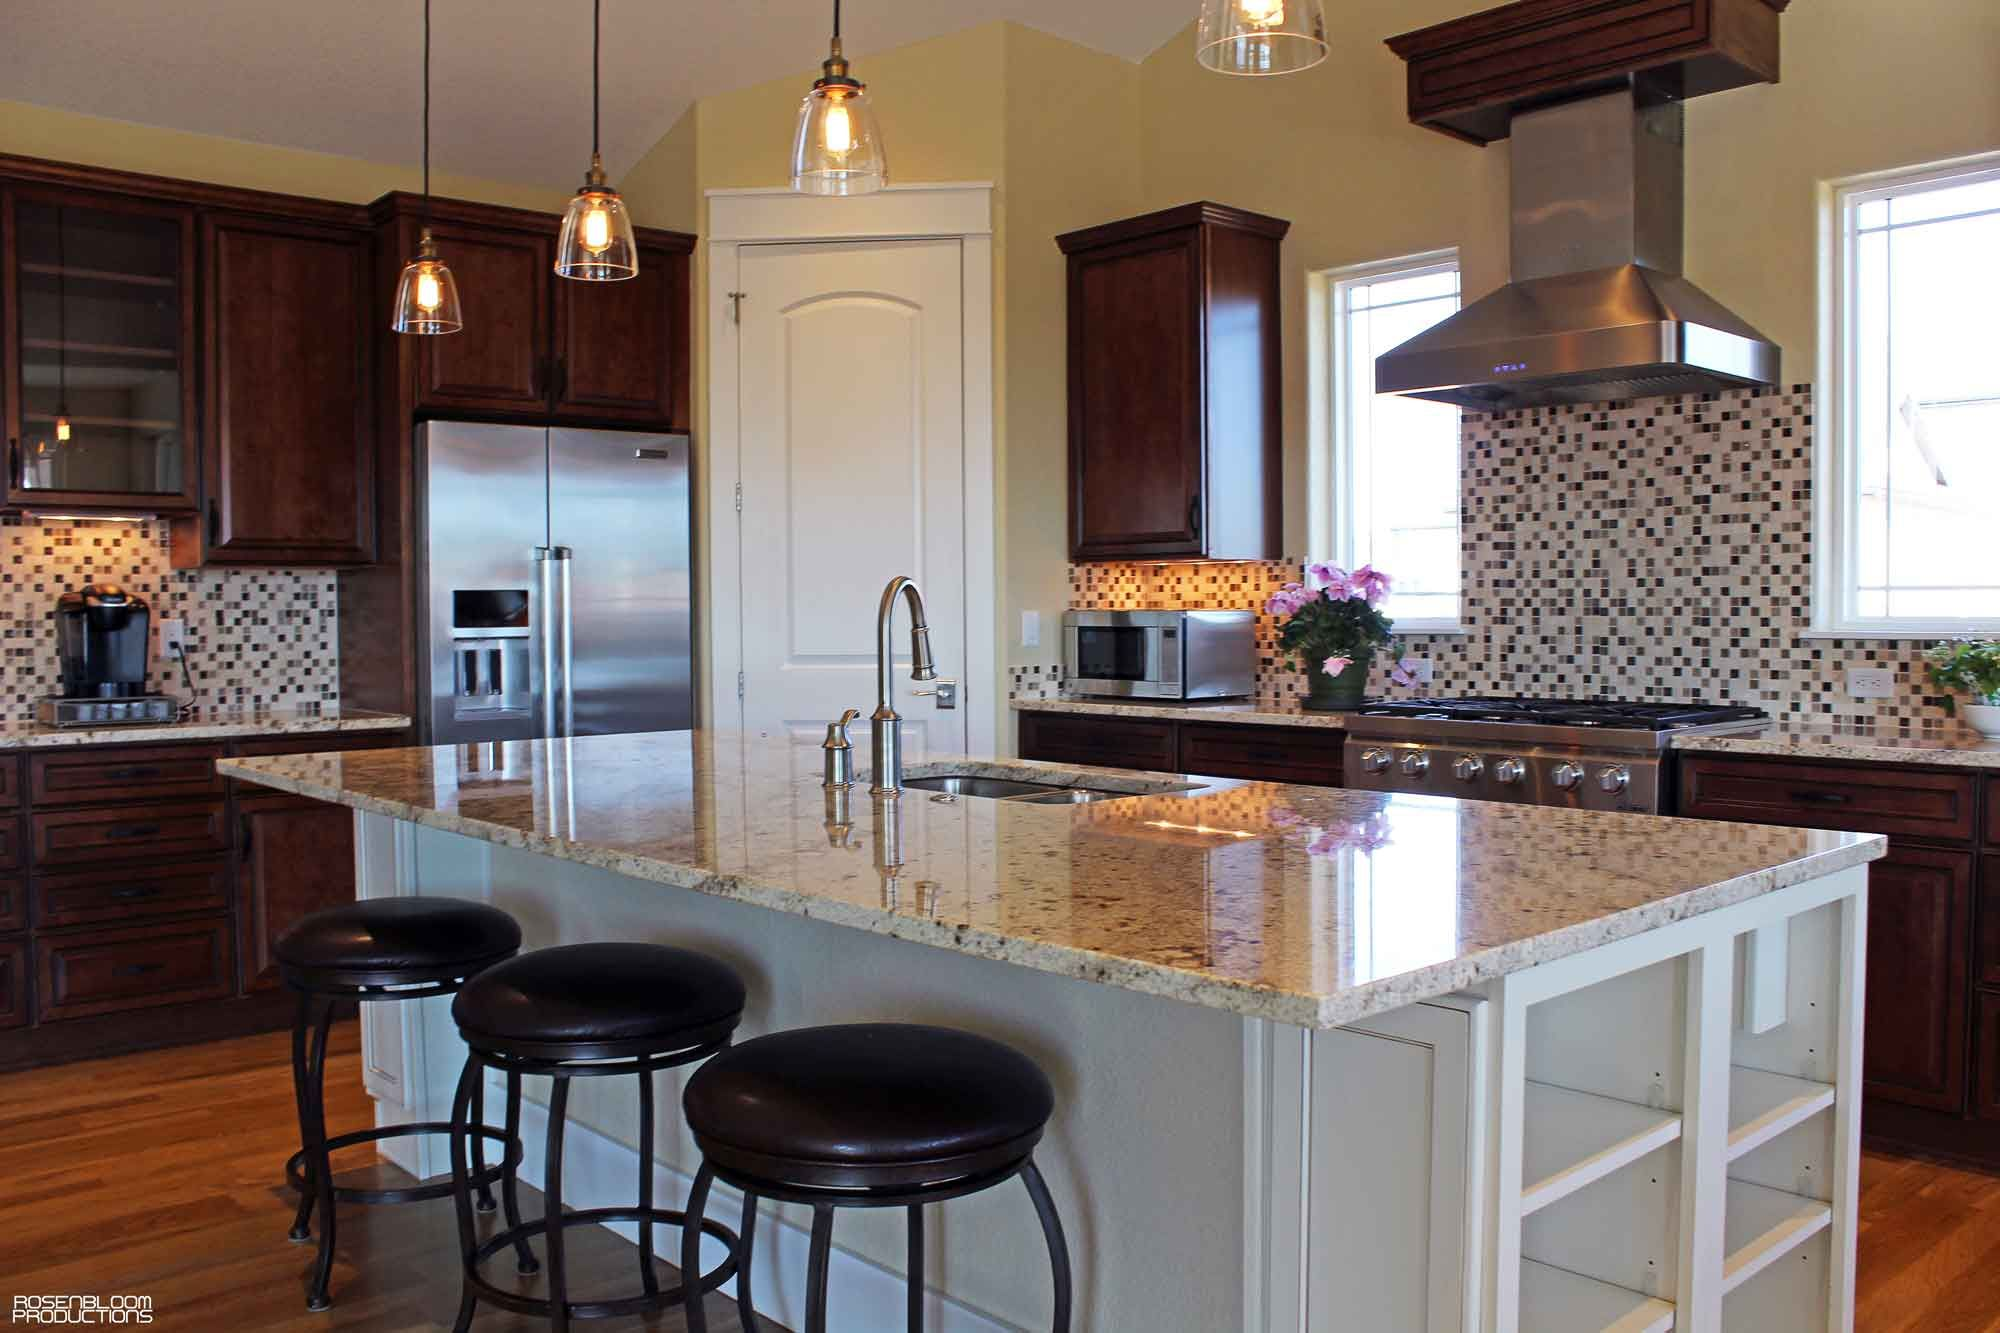 When You Refuse To Settle And Want Only The Best That Is When It S Time To Explore The High End Cabinet Cabinets And Countertops Countertop Design Countertops